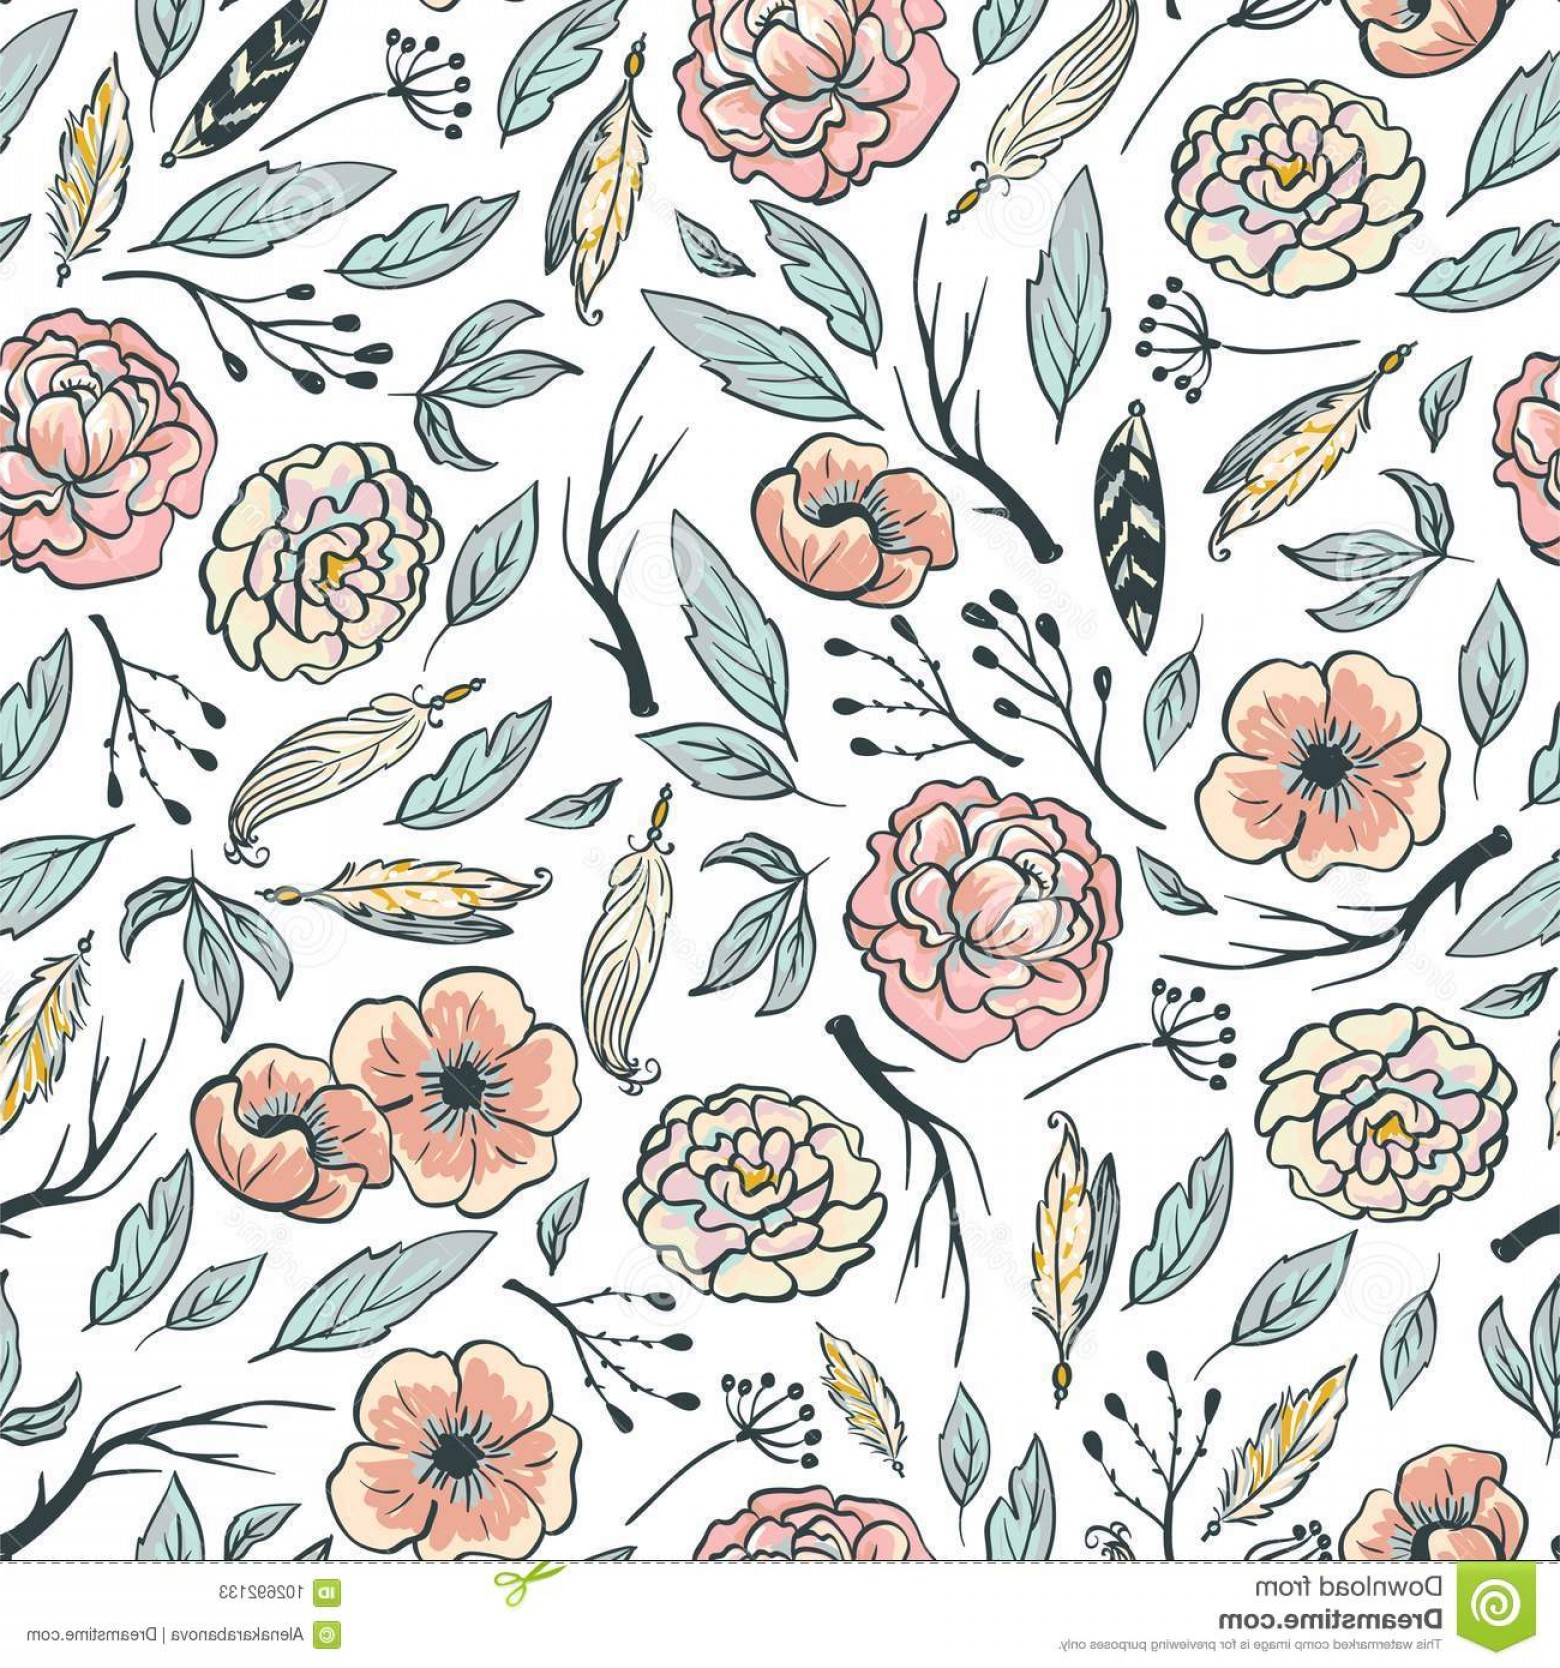 Free Download Boho Floral Vector Soidergi 1560x1668 For Your